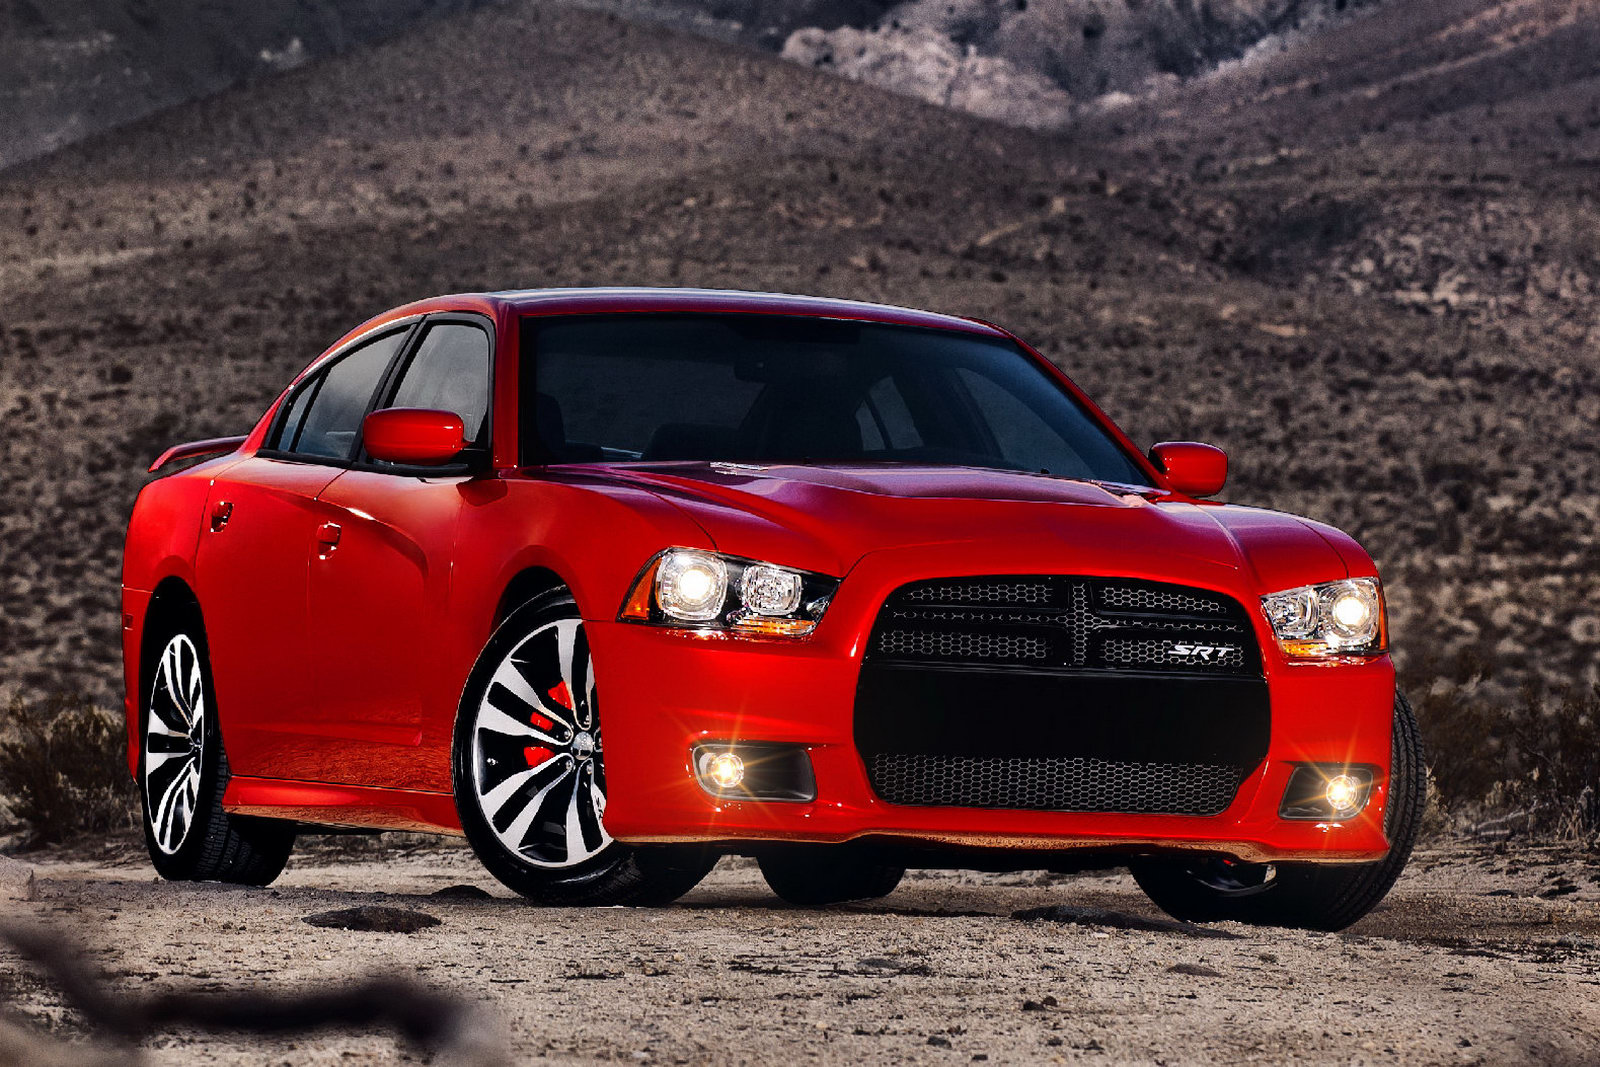 chicago auto show will witness the unveiling of 2012 dodge charger srt8. Black Bedroom Furniture Sets. Home Design Ideas